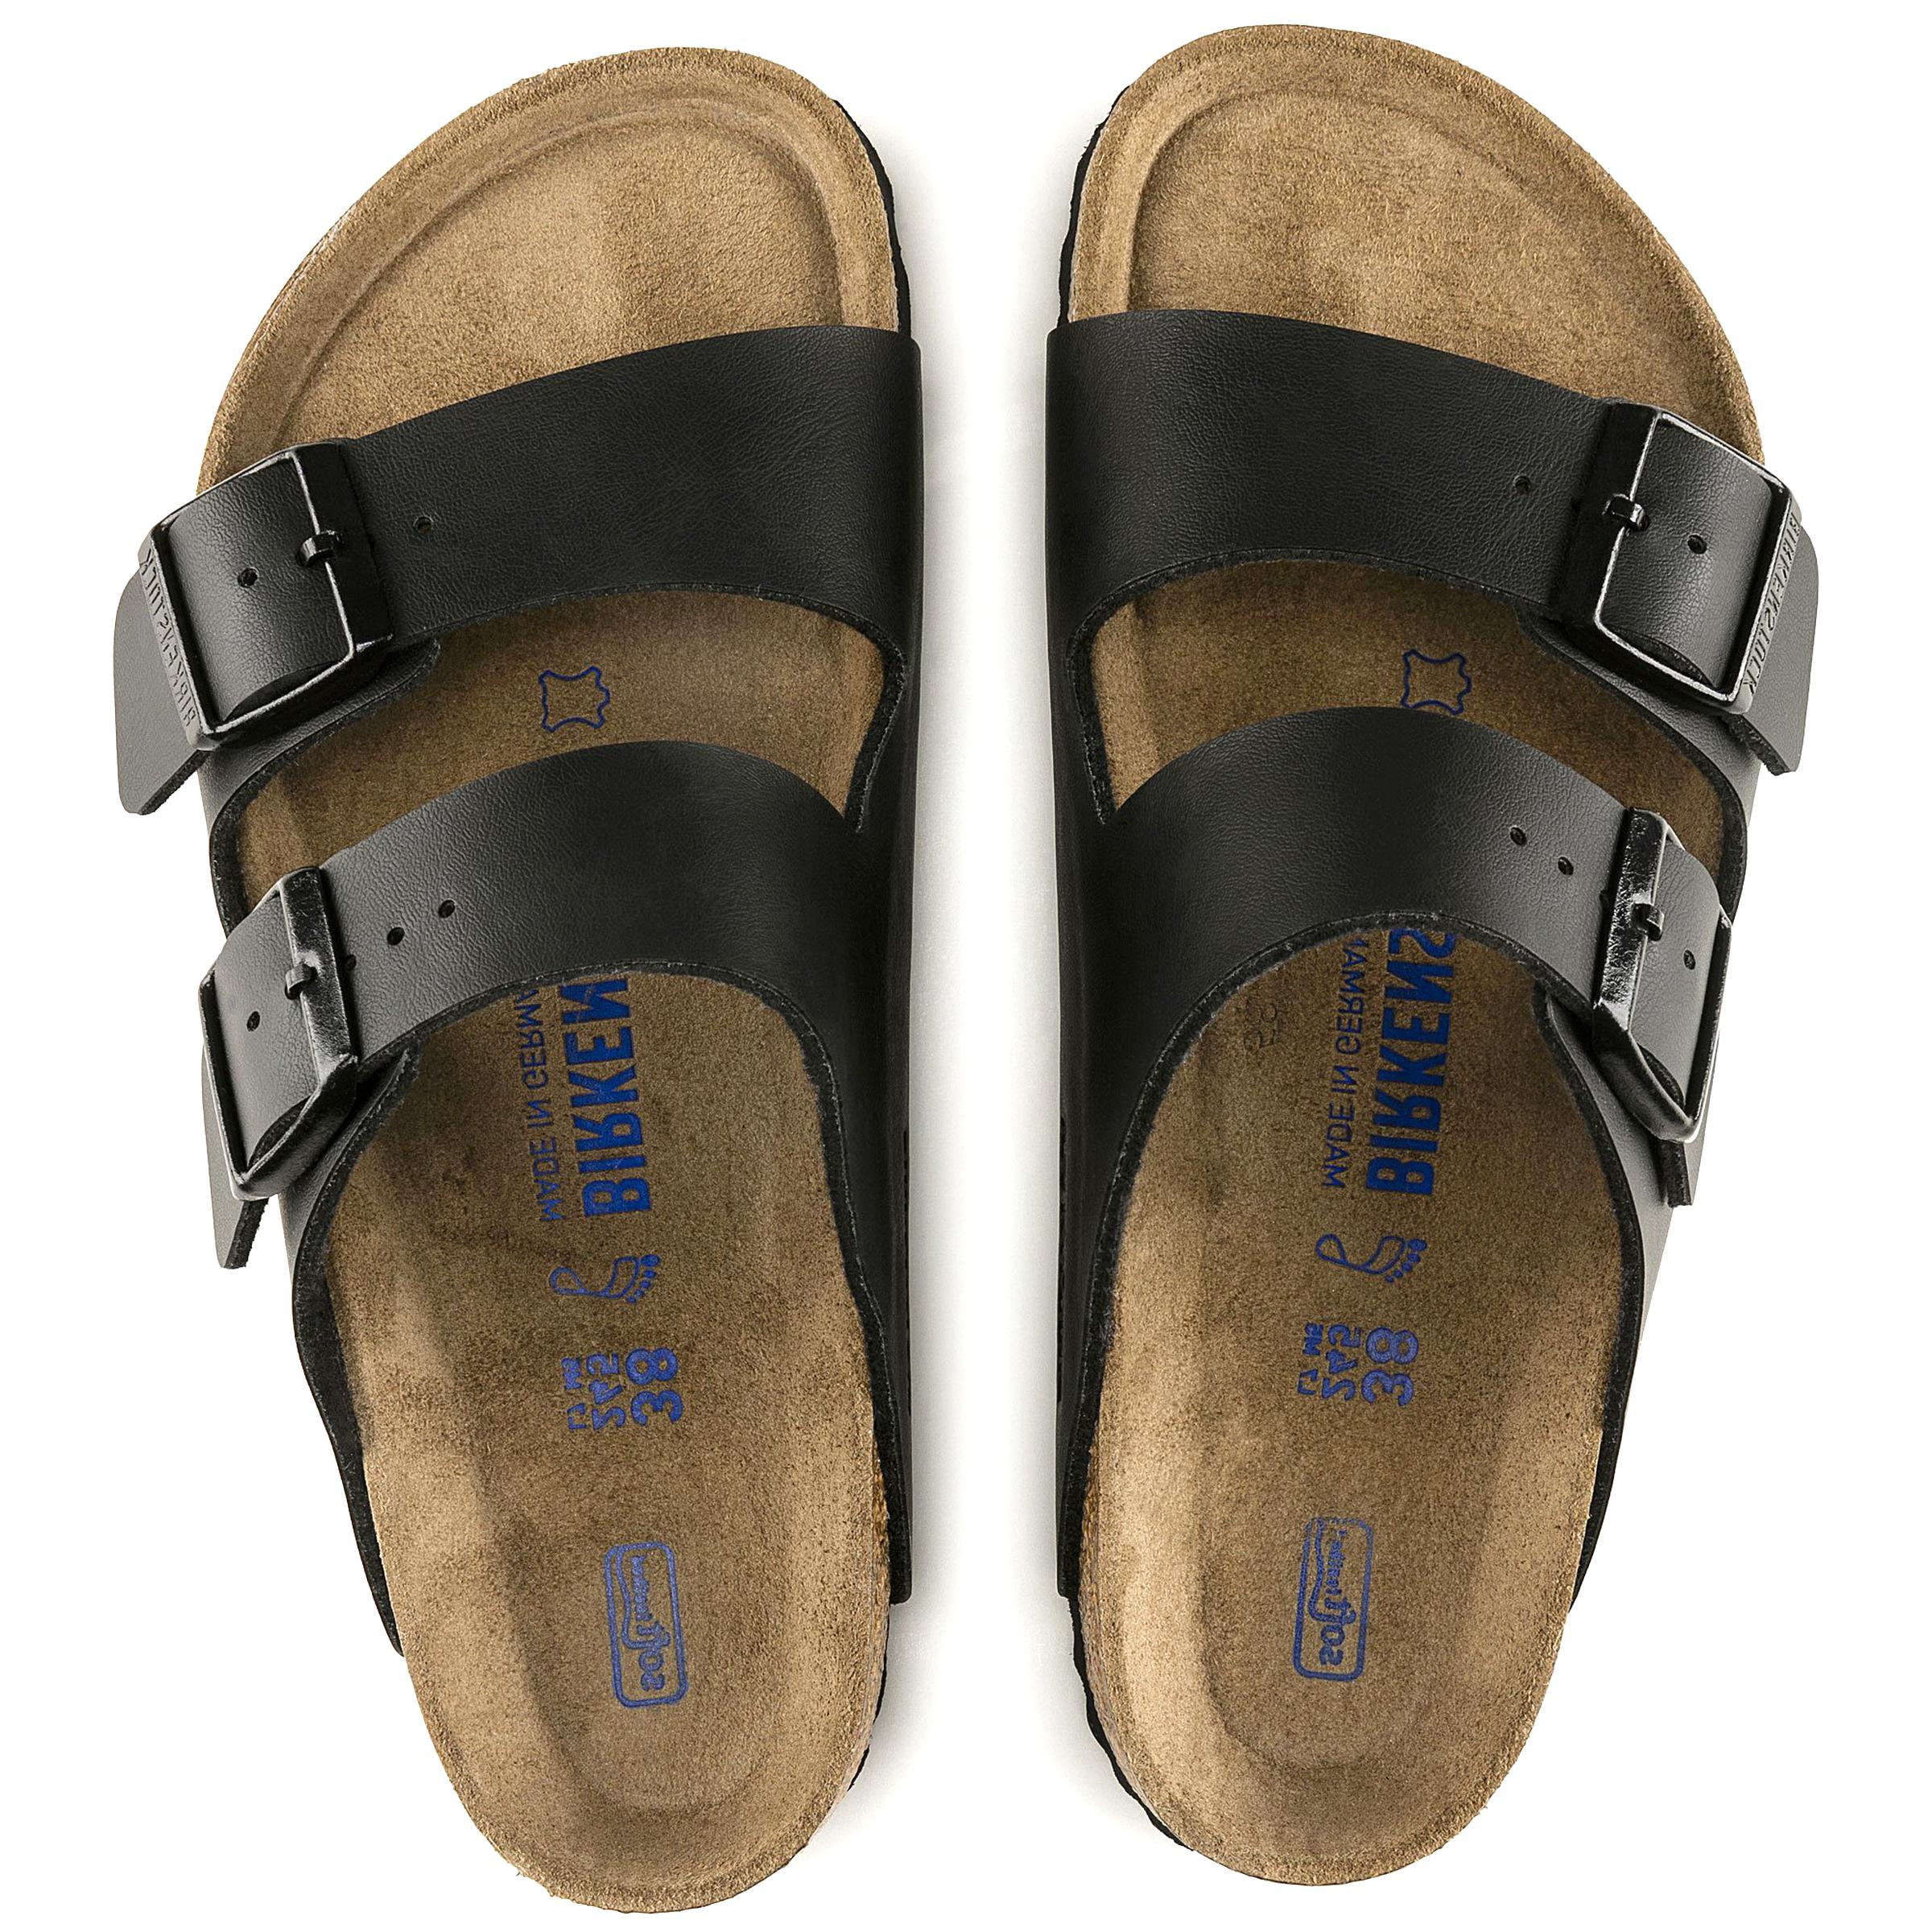 latest design wholesale price cheaper Birkenstock Soft Footbed for sale   Only 2 left at -70%